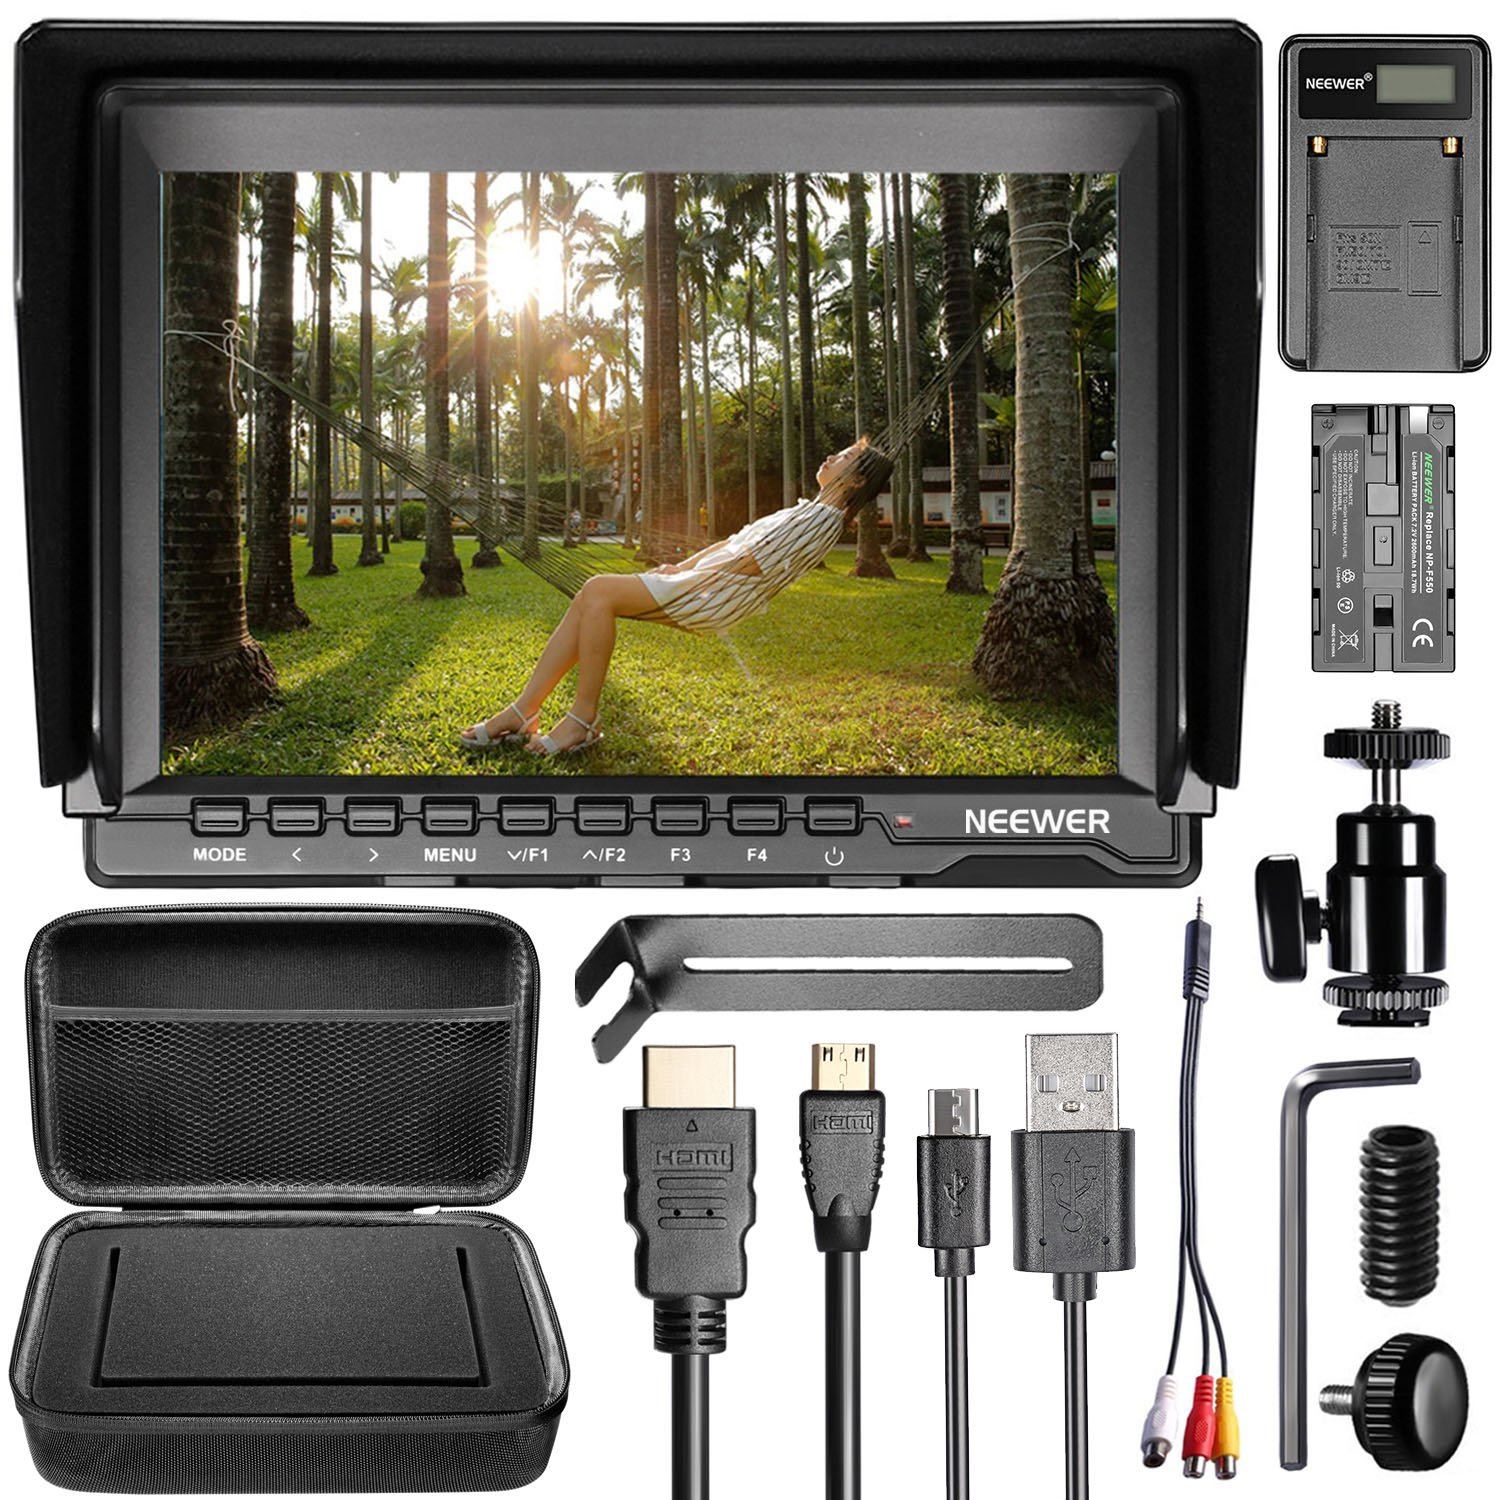 Neewer NW759 Camera Field Monitor Kit:7 inches Ultra HD 1280x800 IPS Screen Field Monitor+F550 Replacement Battery+Micro USB Battery Charger+Carrying Case for Sony Canon Nikon Olympus Pentax Panasonic by Neewer